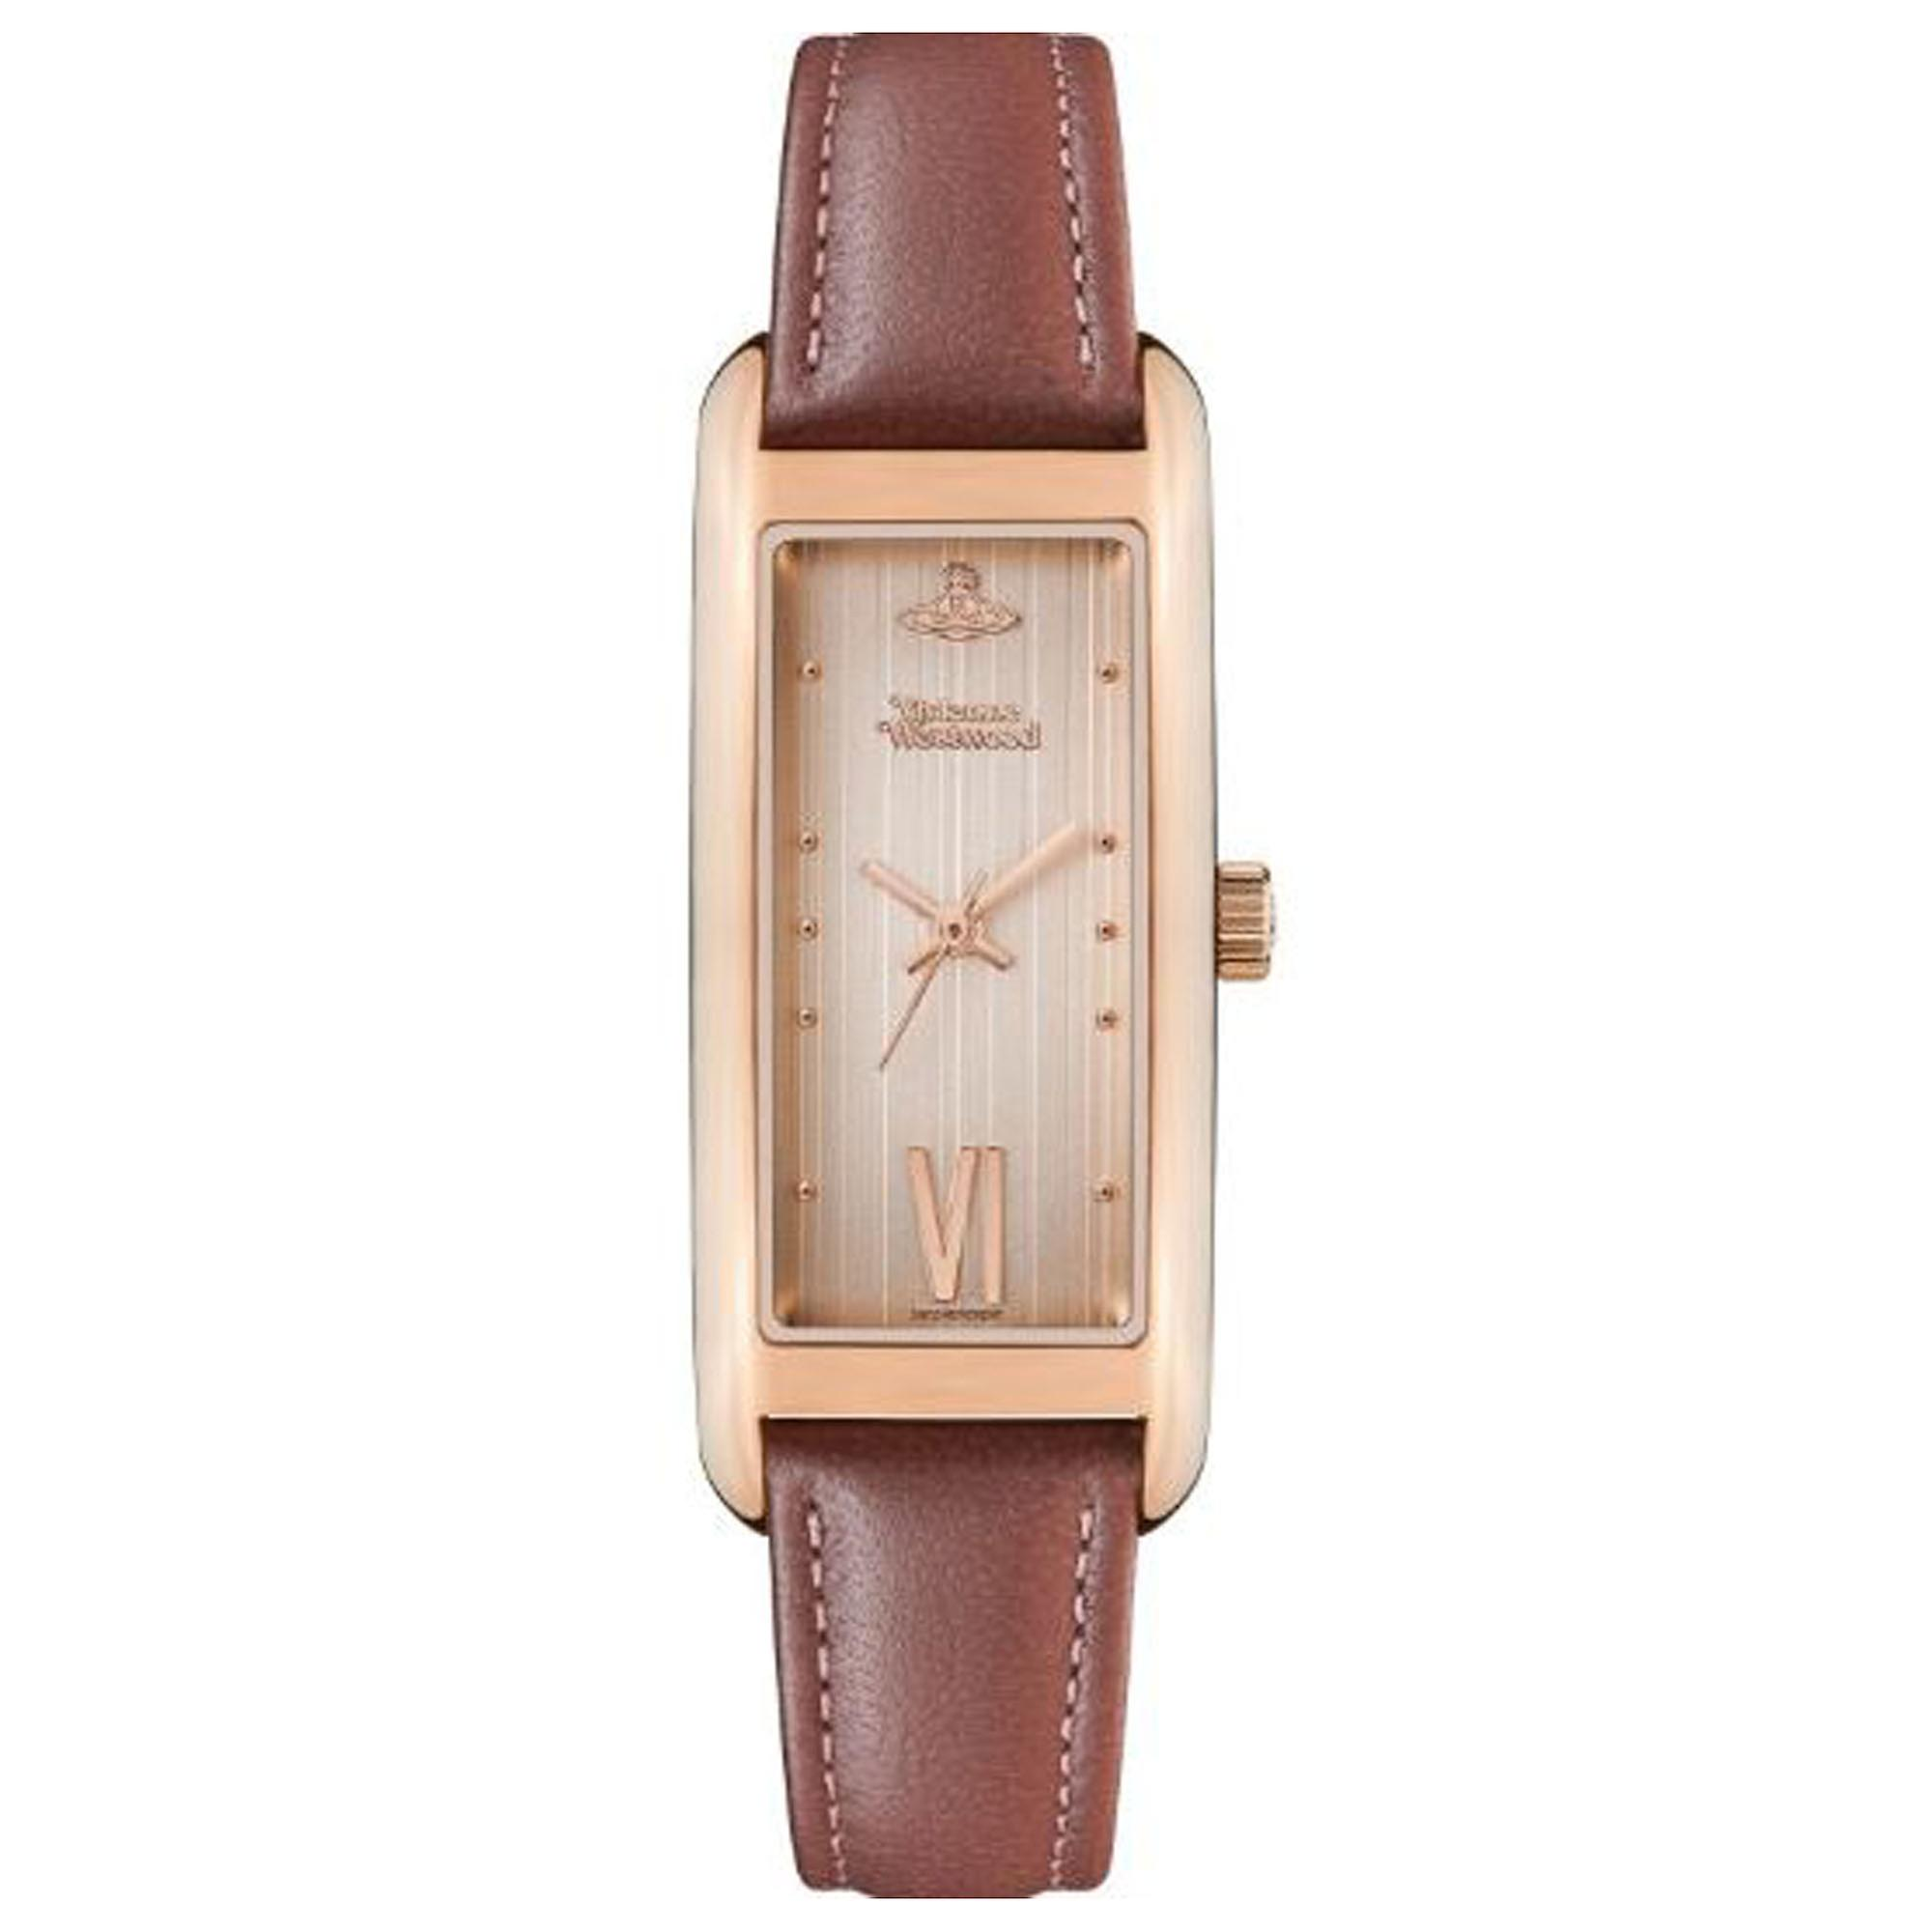 Vivienne Westwood West End Quartz Rose Gold Dial Brown Leather Strap Ladies Watch VV224RSDPK